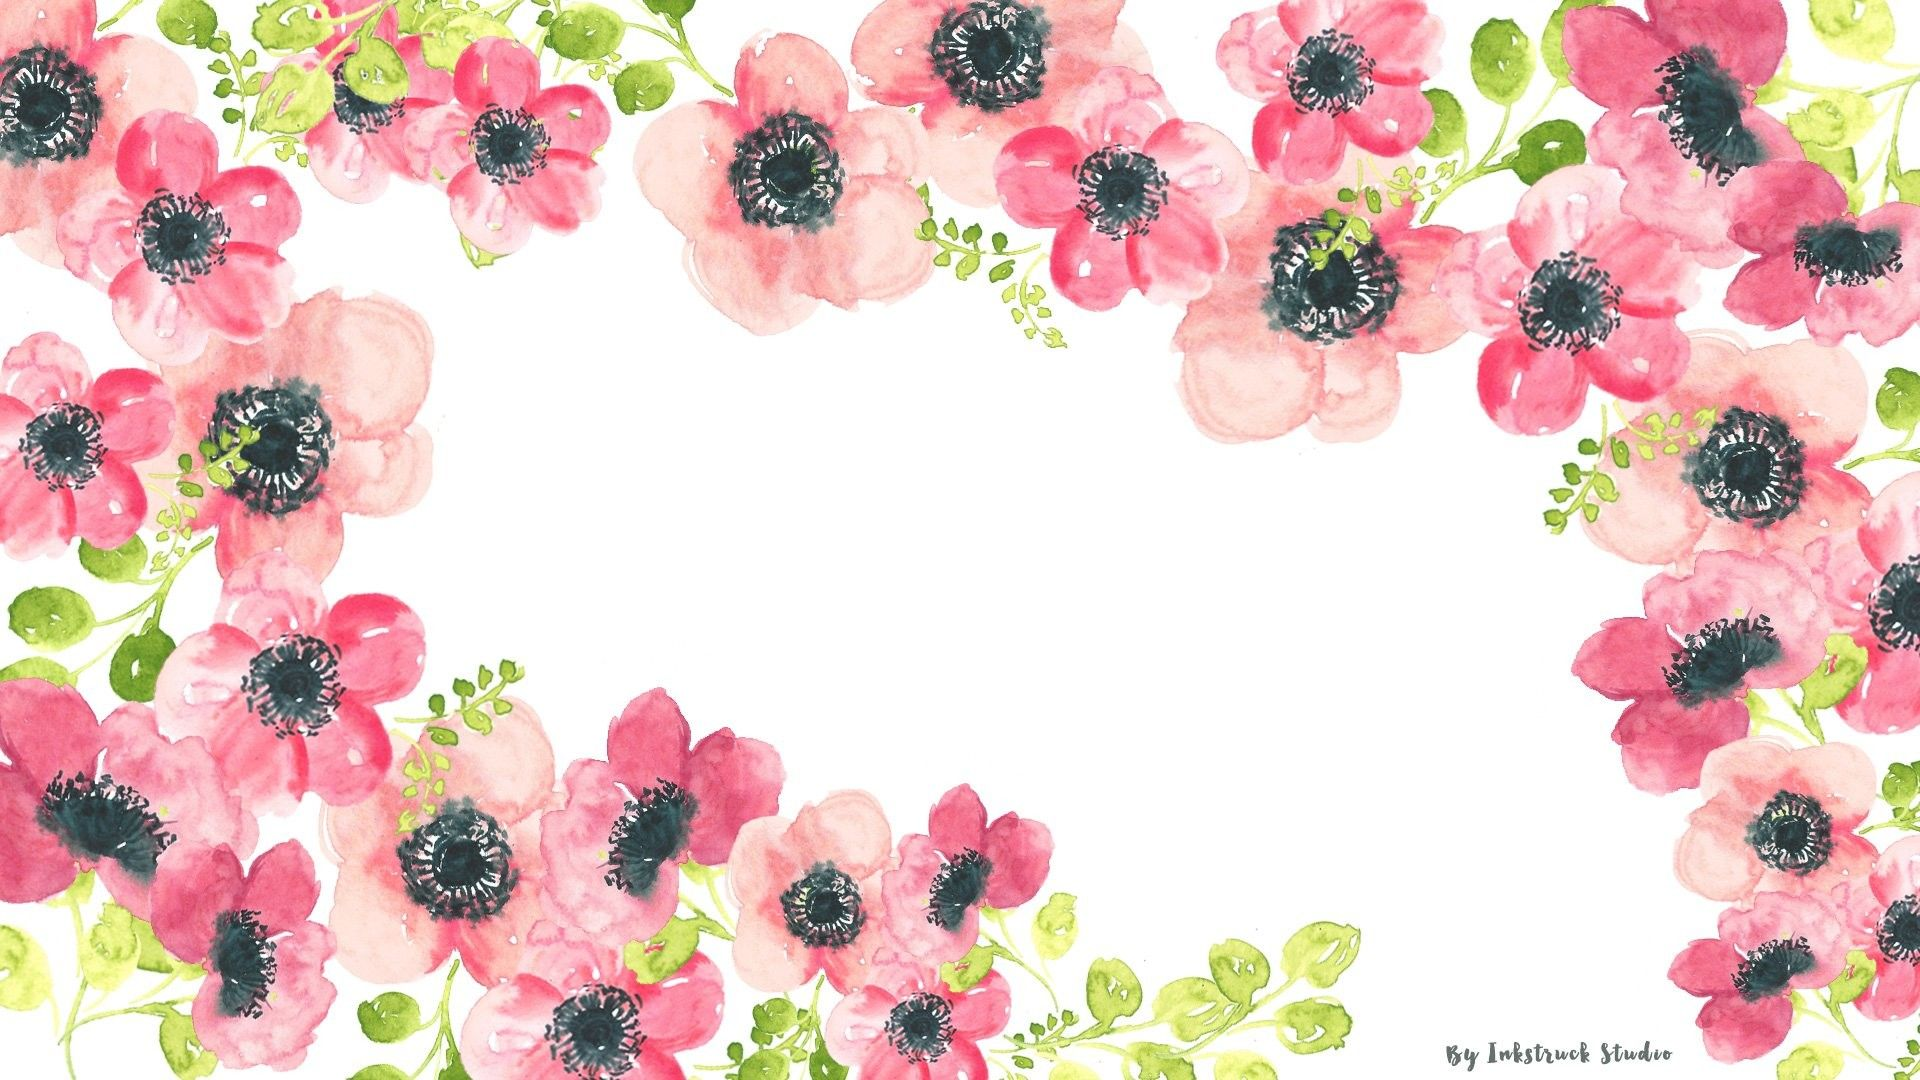 1920x1080 Watercolor Floral Desktop Wallpaper Jpg 1 920a 1 080